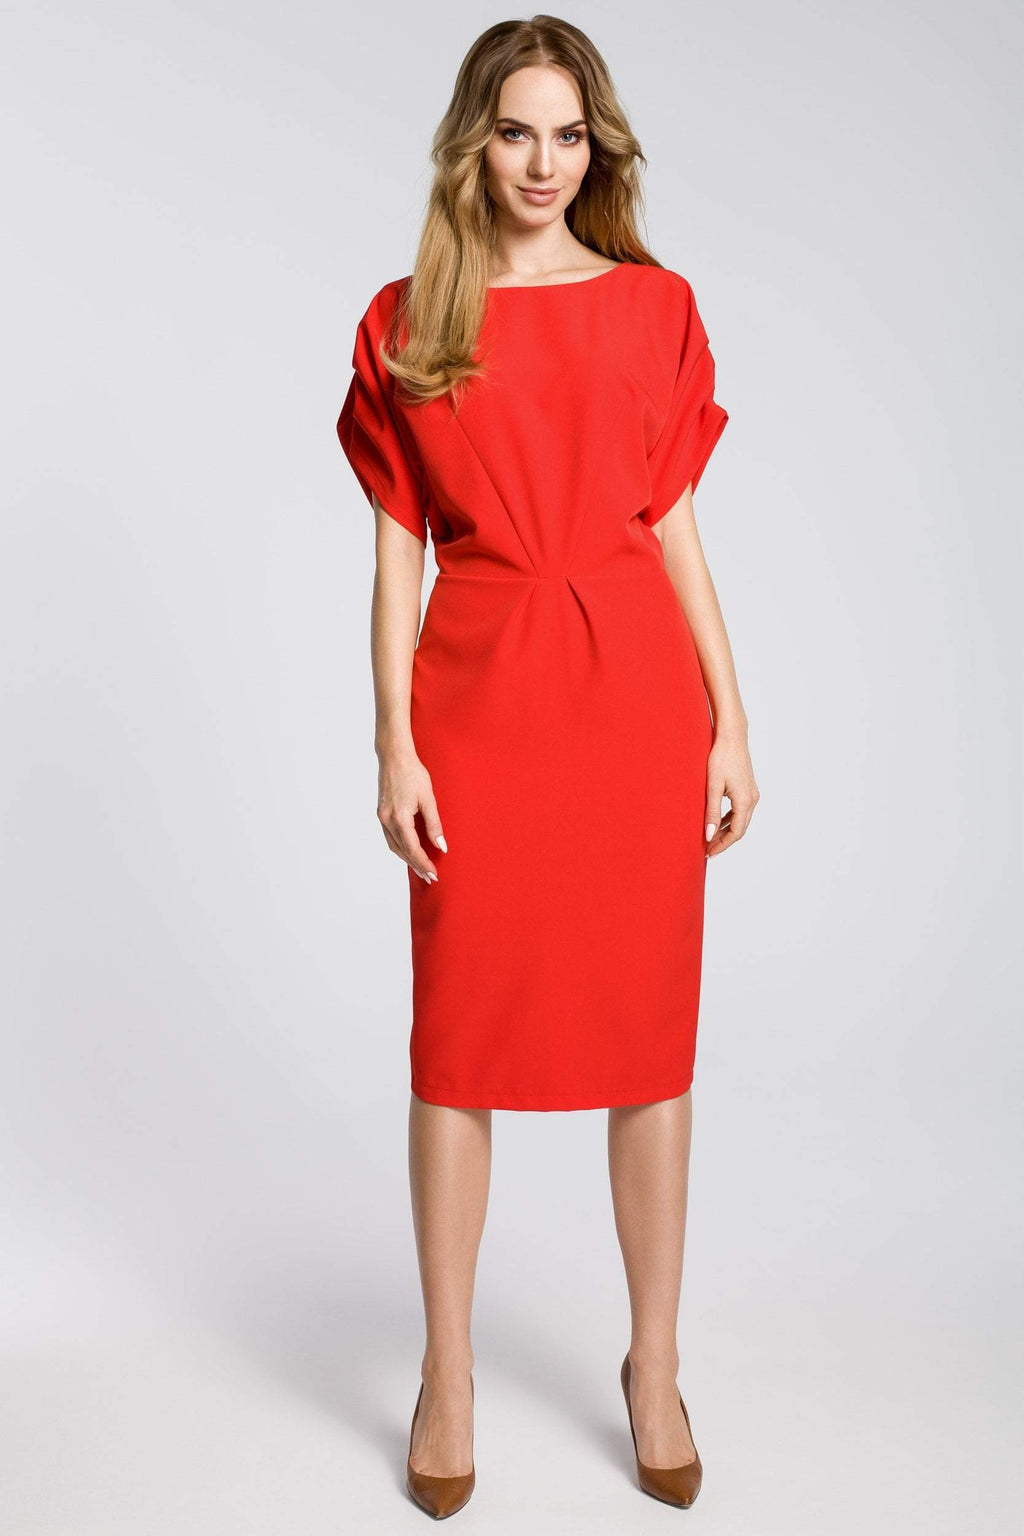 Red Midi Sheath Dress With Kimono Sleeves - So Chic Boutique